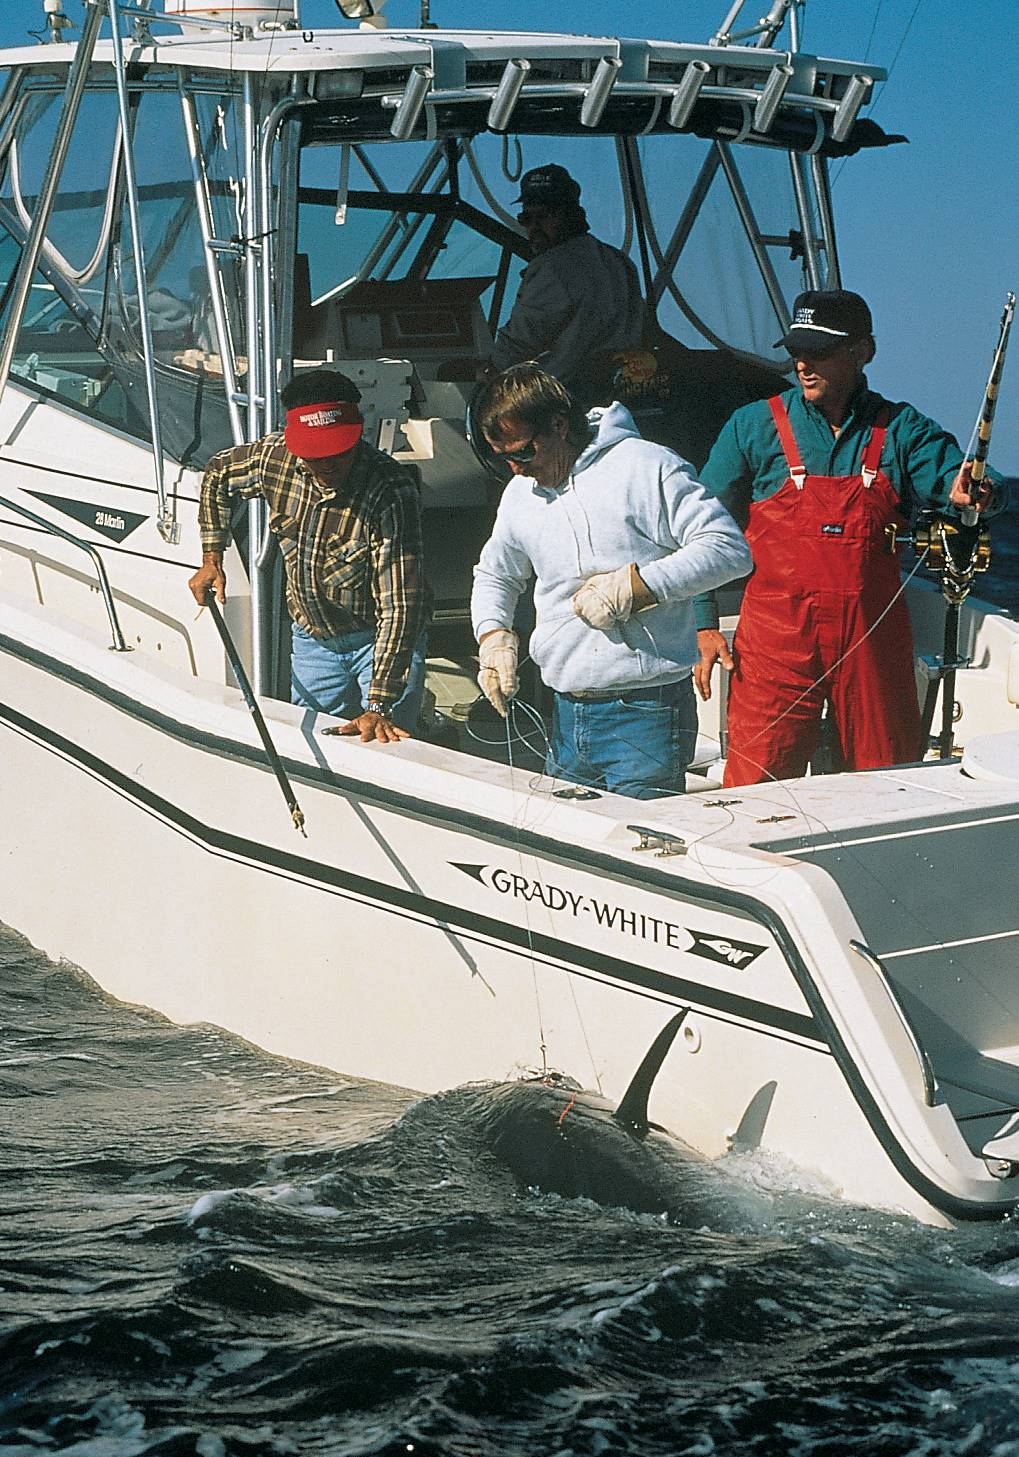 Tuna fishing on a Grady-White boat.